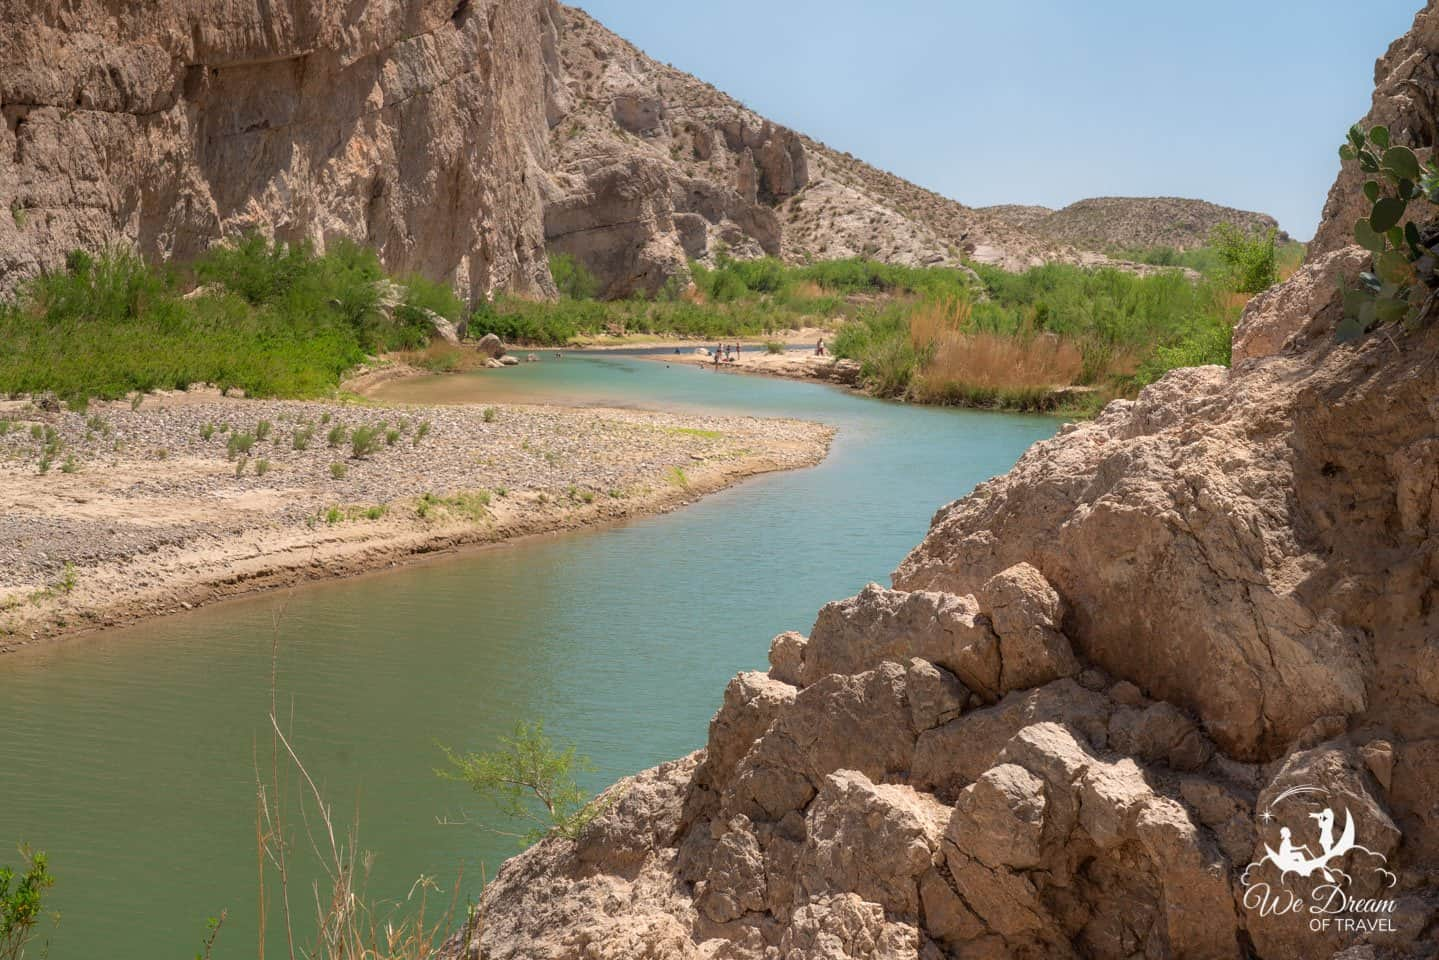 Enjoy a day on the beach in the aqua waters of the Rio Grande from the Boquillas Canyon Trail.